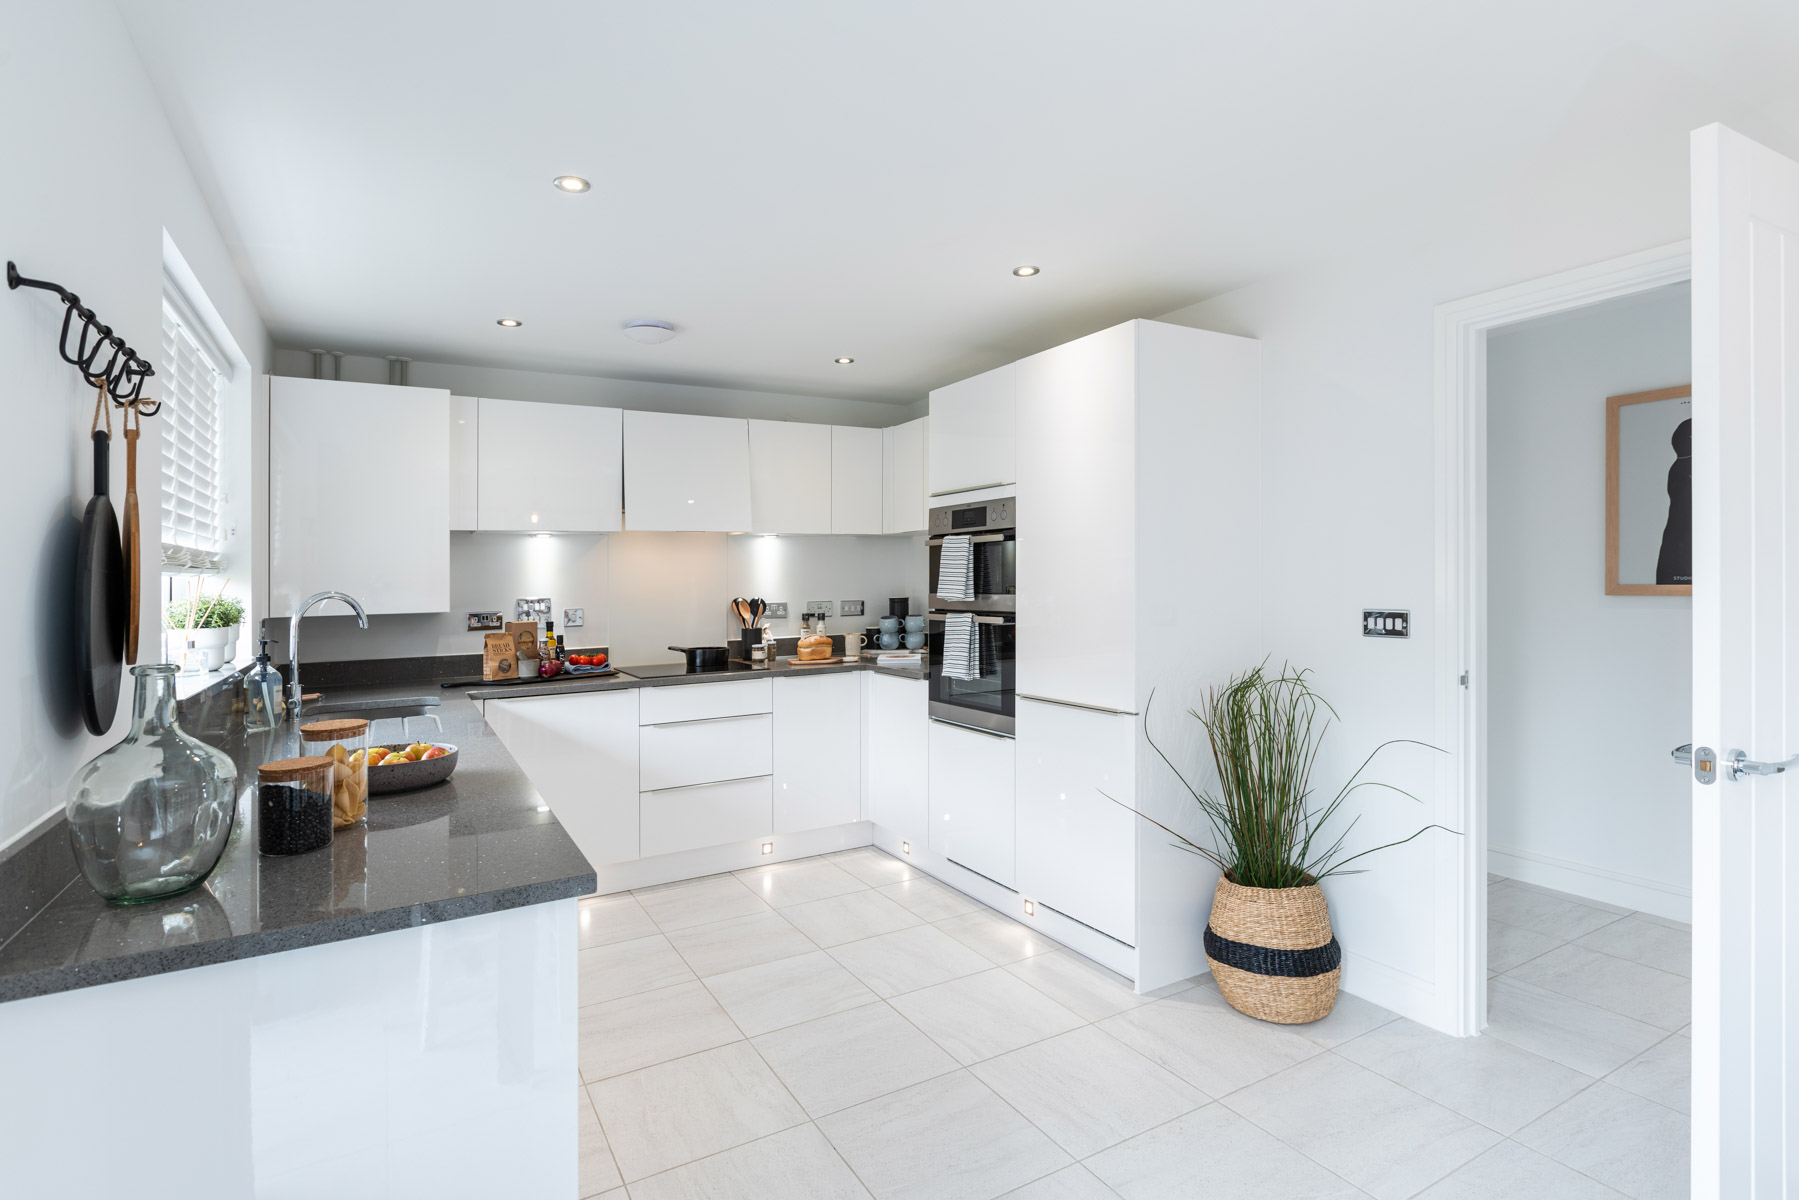 TW Exeter - Riverside Walk - Huxford example kitchen